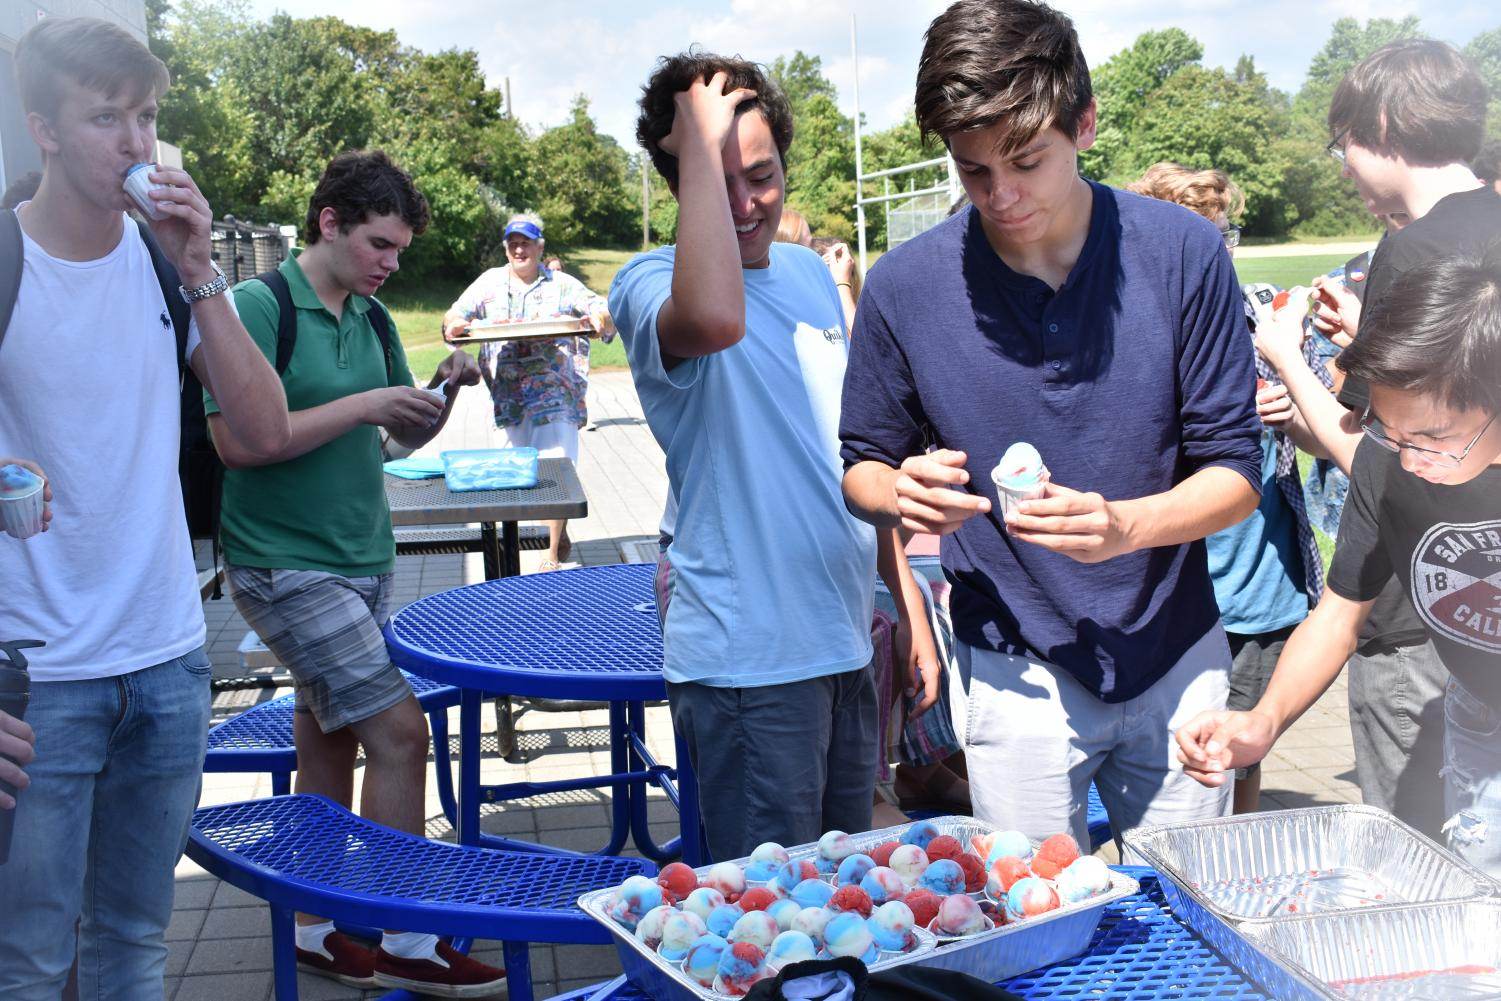 Senior and SGA president Liam Marshall of Sea Girt, center, and junior and SGA member Dane Tedder of Ocean, right, hand out Italian ices on the first day of school.